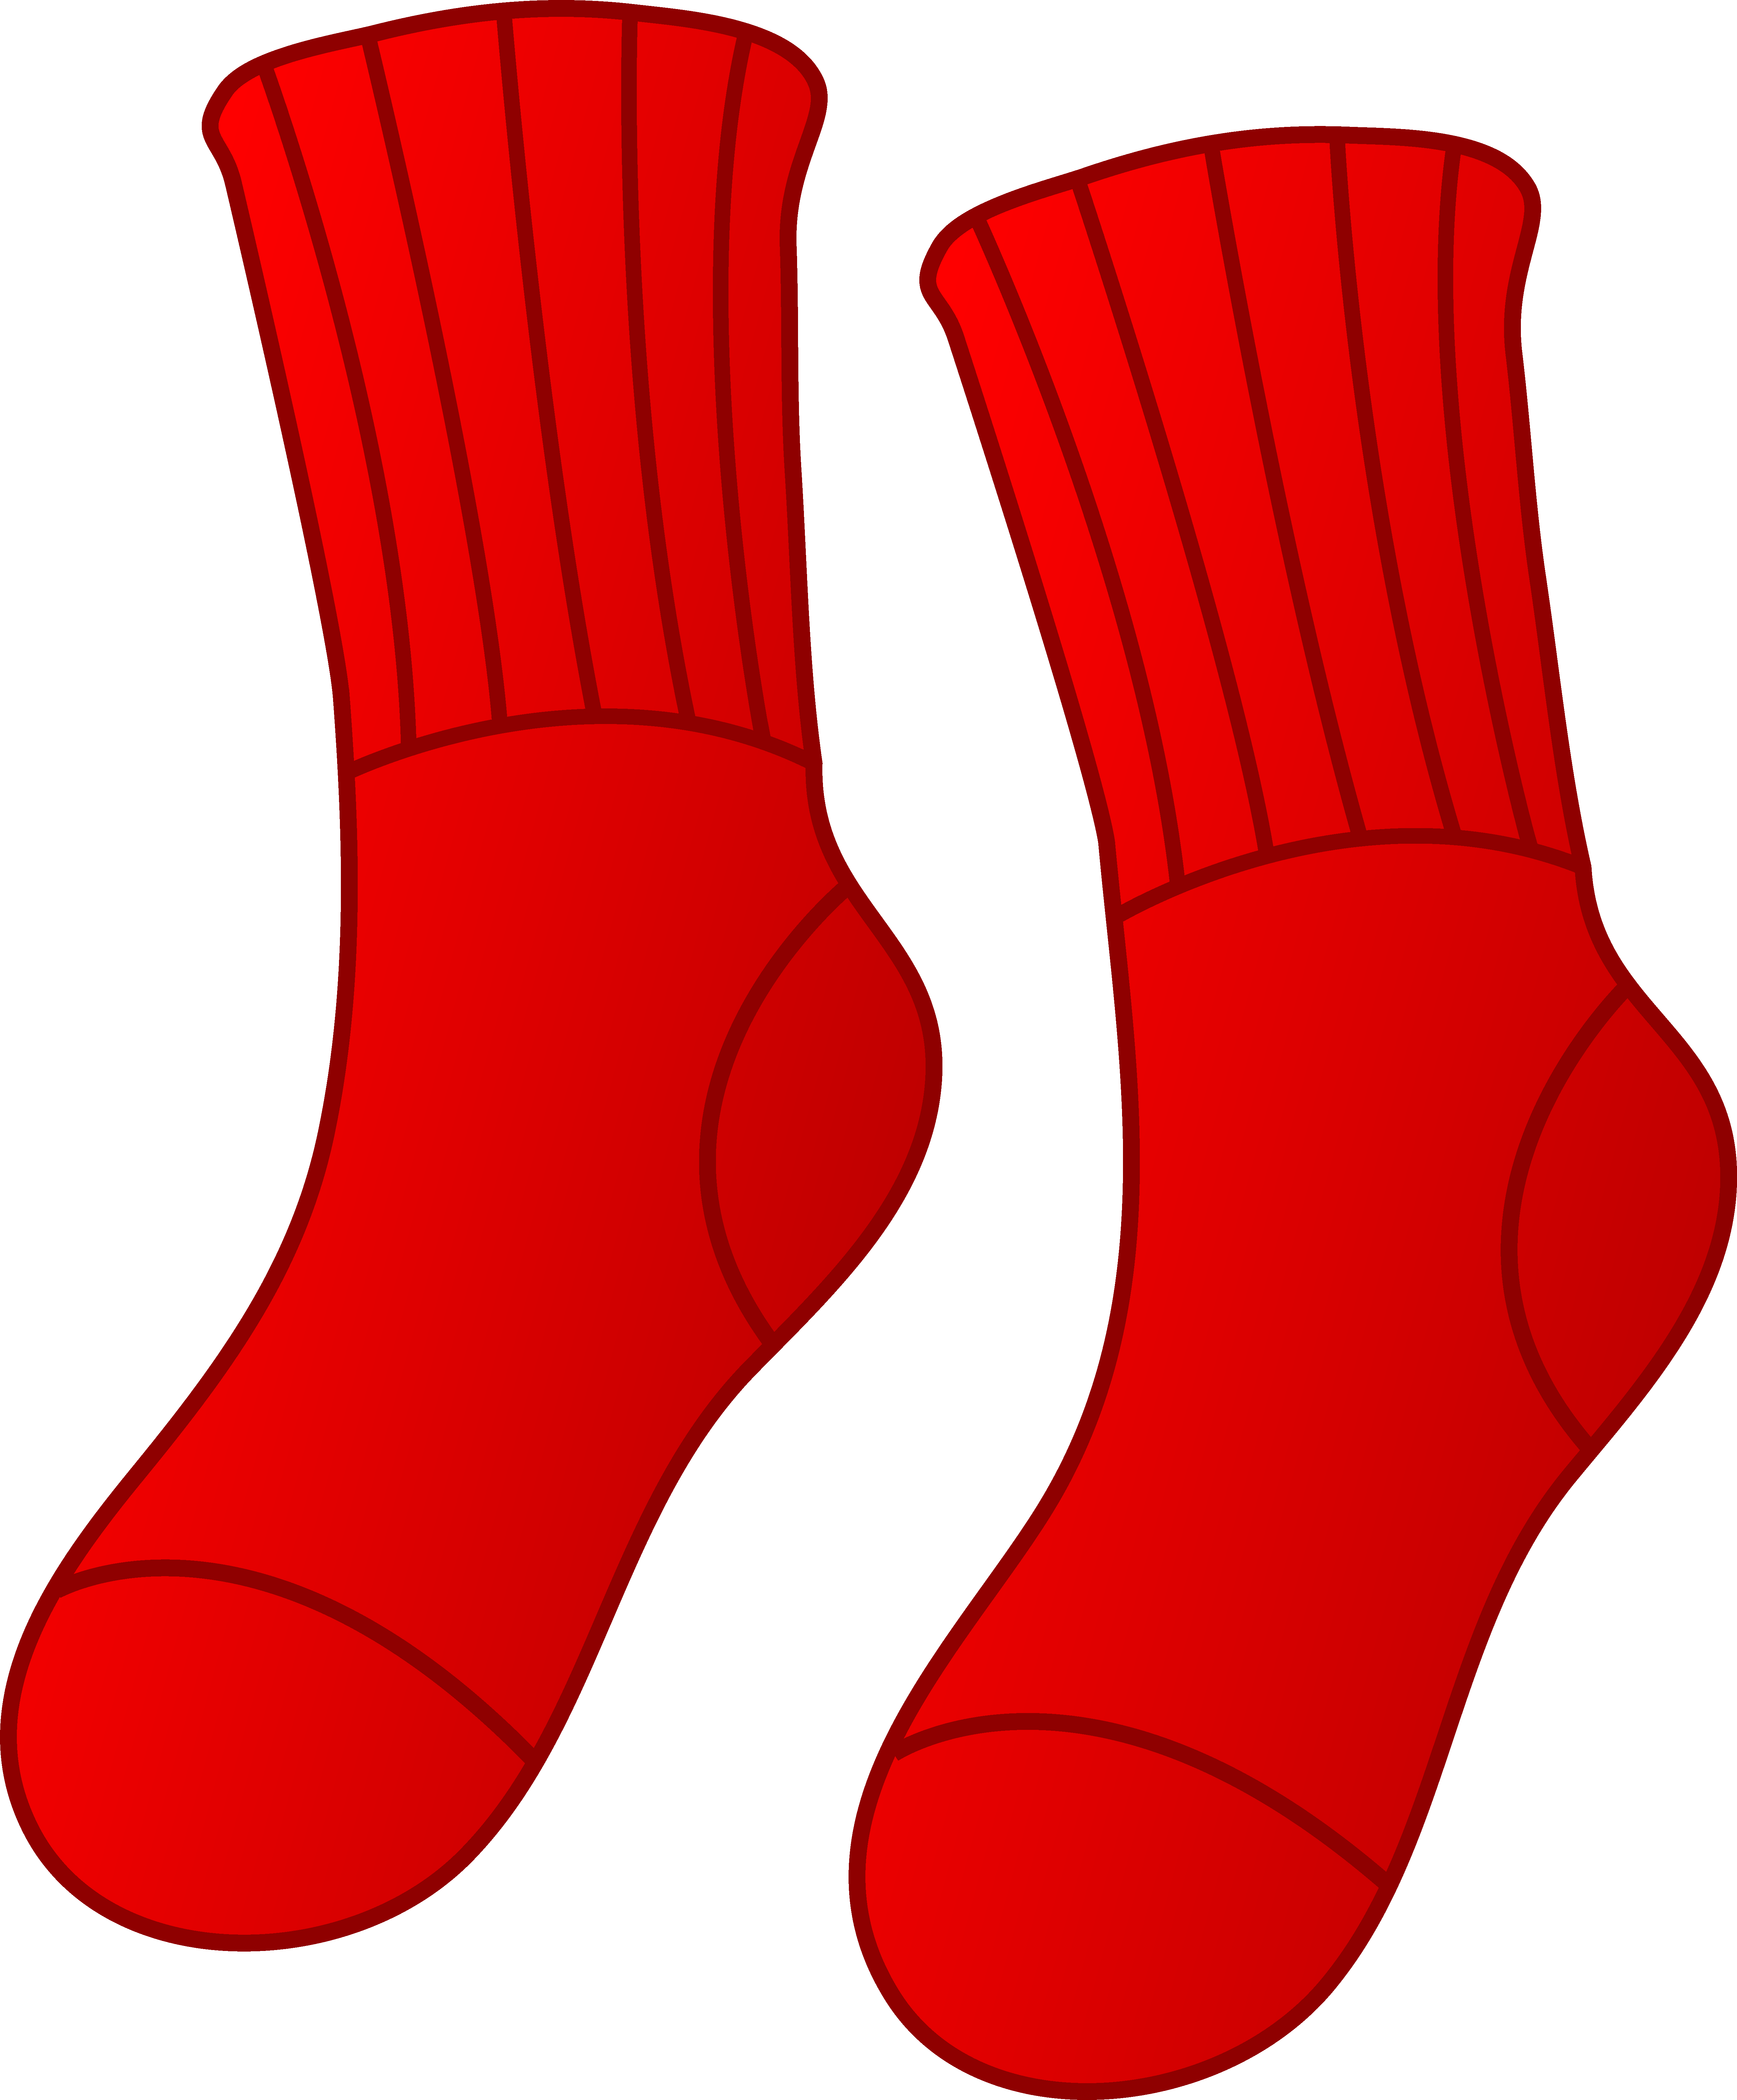 Feet clipart sock Cliparts Feet Clipart Pair Sock